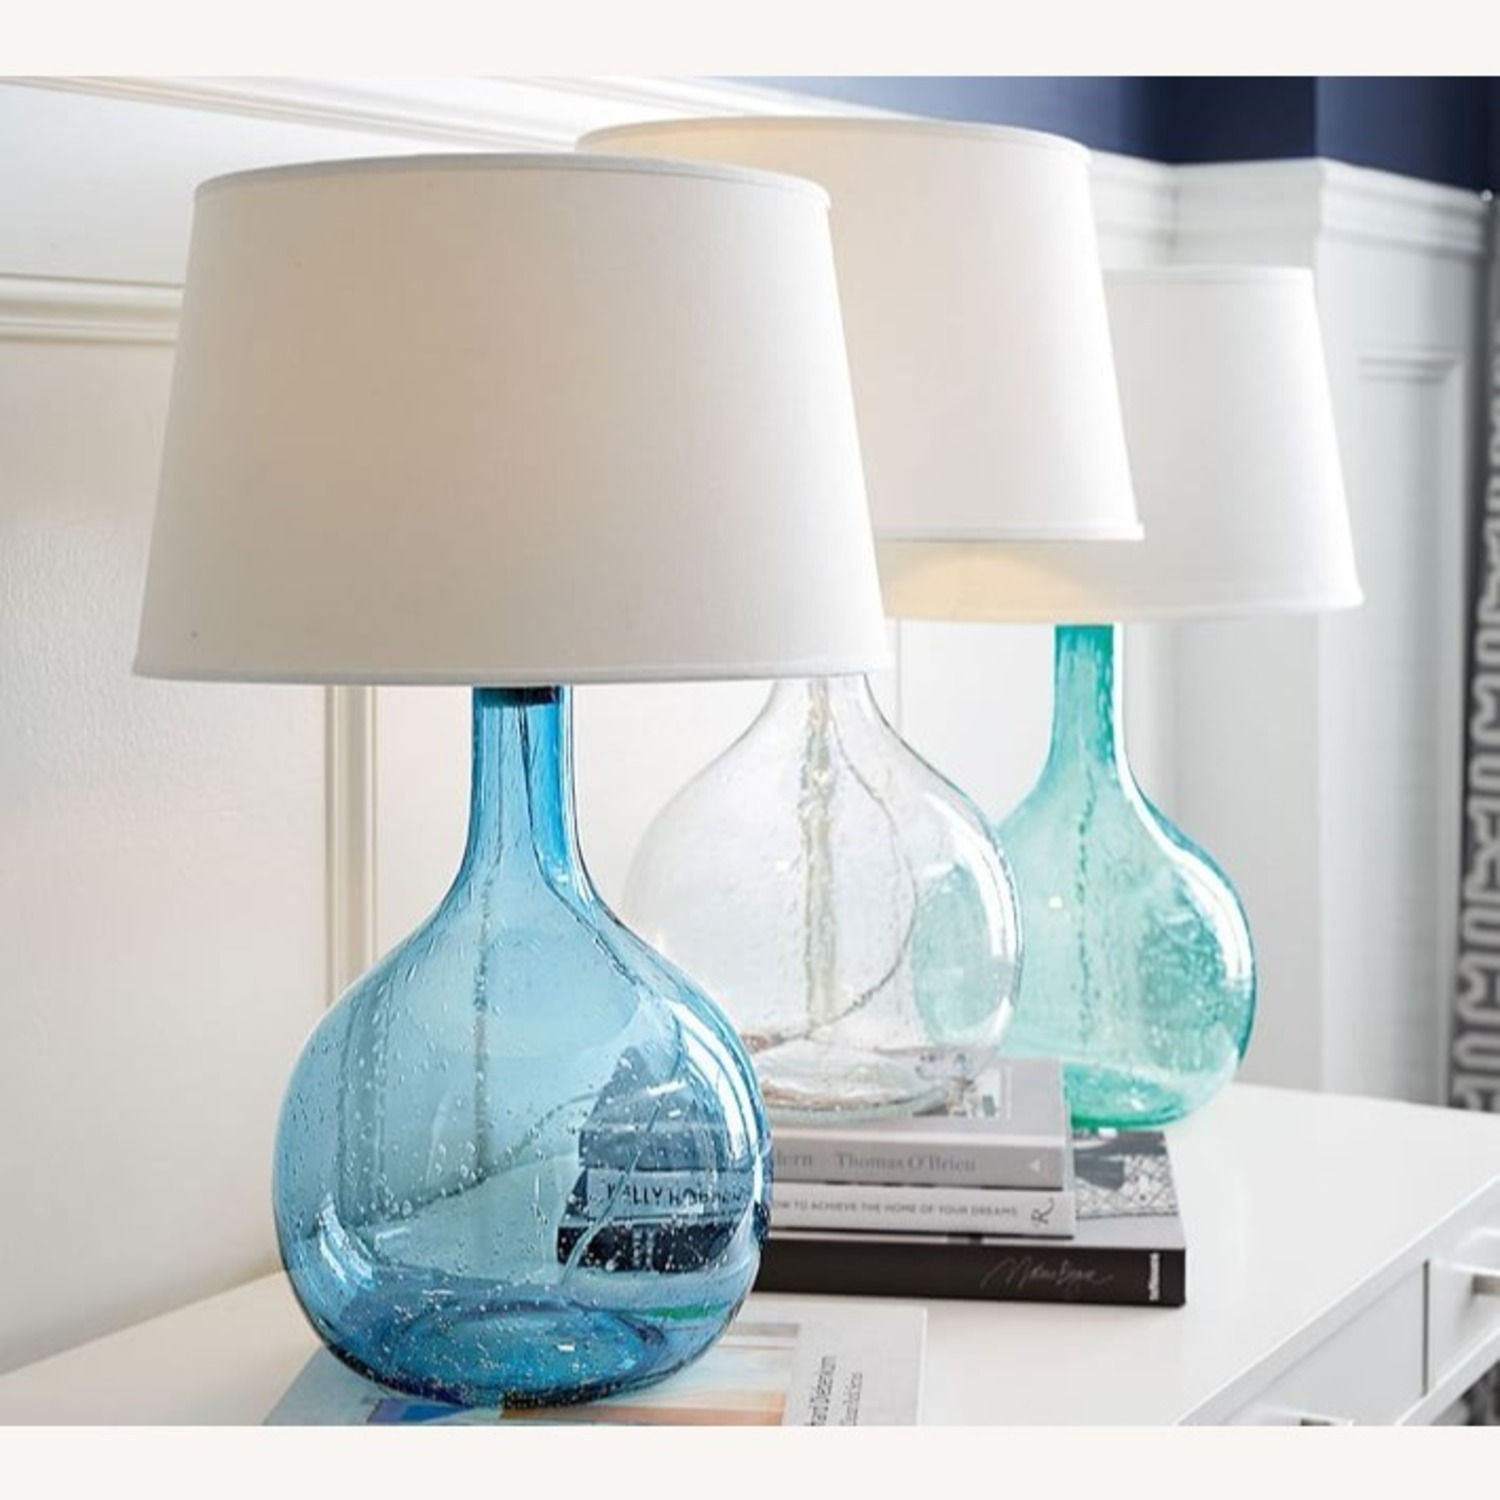 Pottery Barn Eva Colored Glass Table Lamps (blue) - image-2